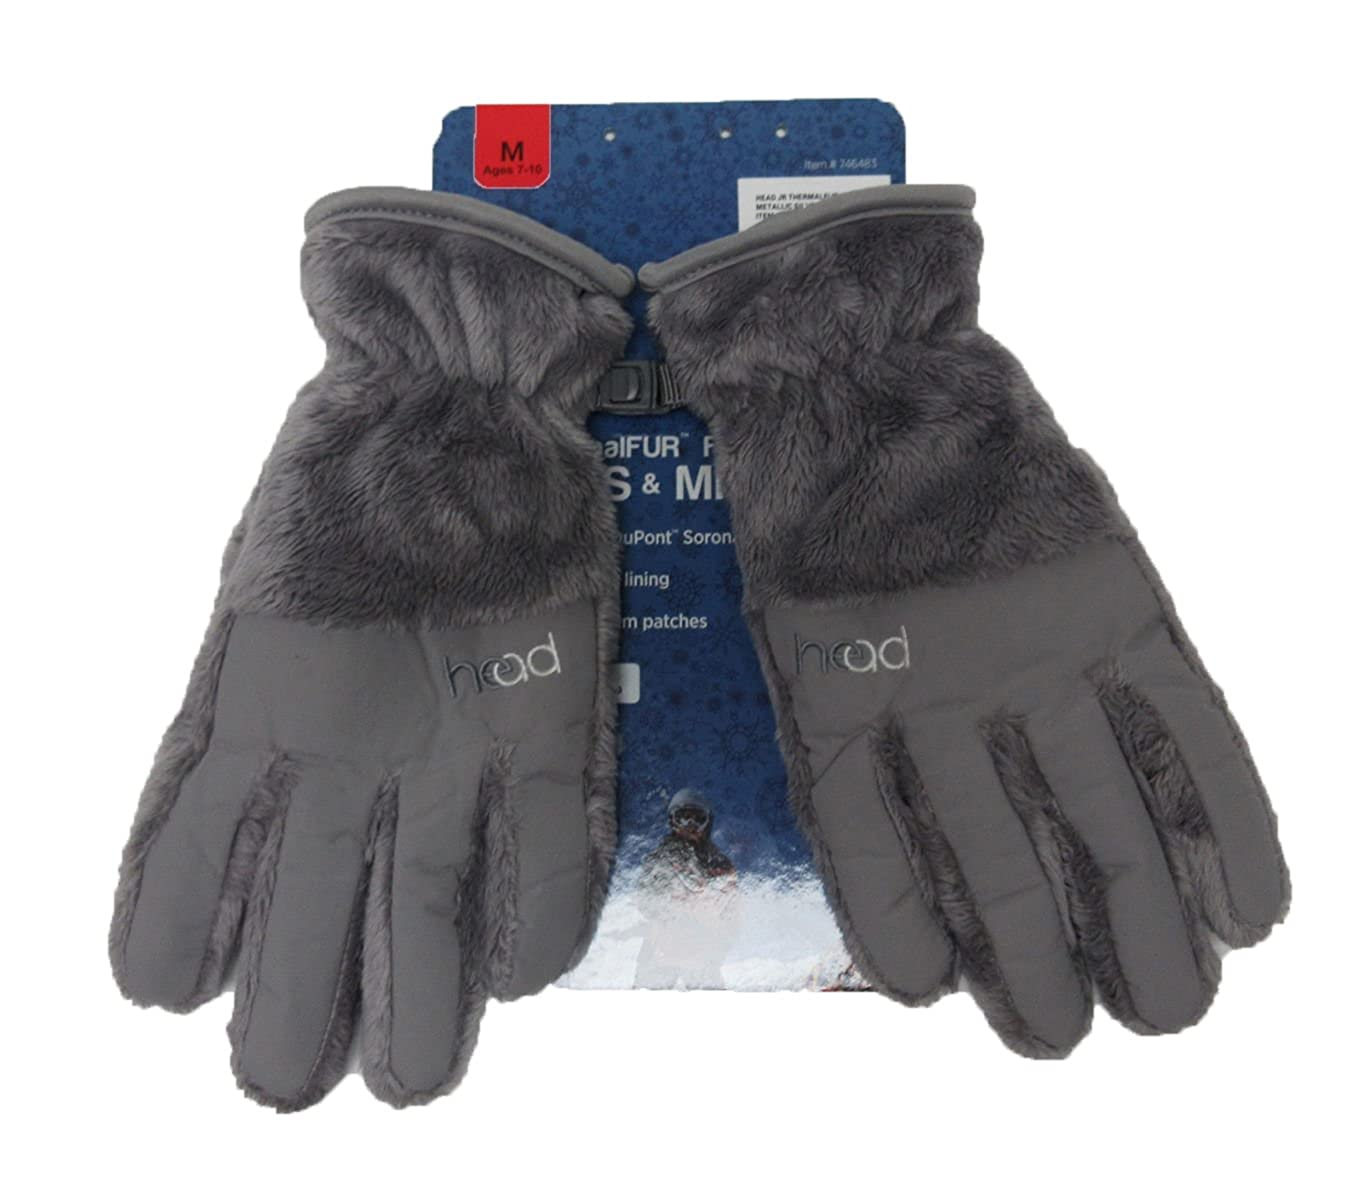 HEAD ThermalFUR Fleece Gloves - Child Size 746483